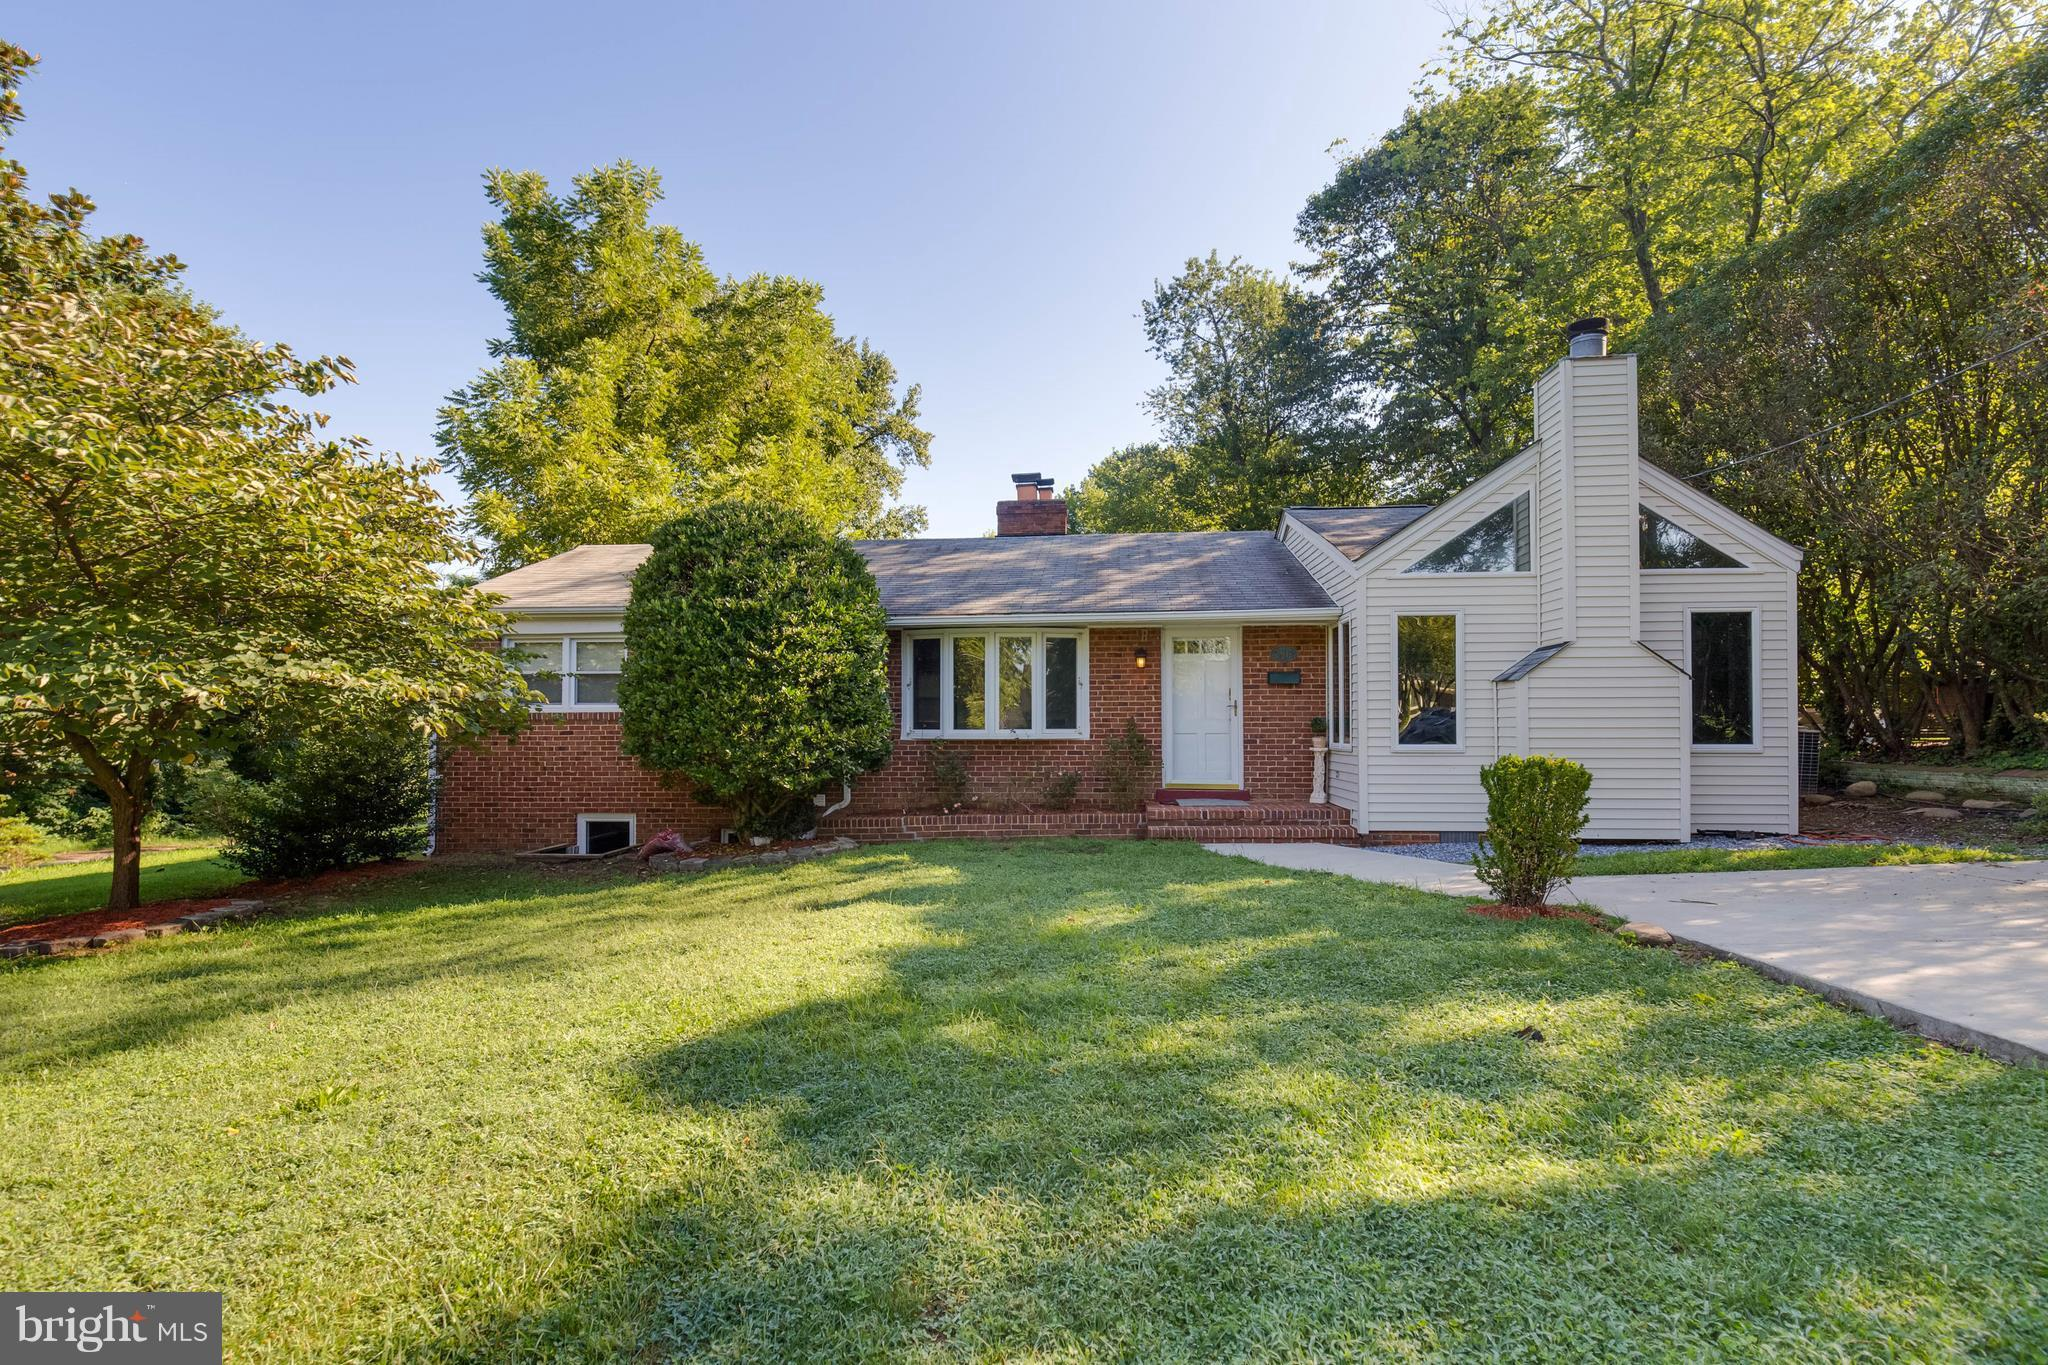 Wonderful home with 4 bedrooms and 2 full baths with 2 finished levels. The yard is open and very nice and the backyard has a screened in patio for enjoying the summer evenings. This home is  a must see and ready to move in!